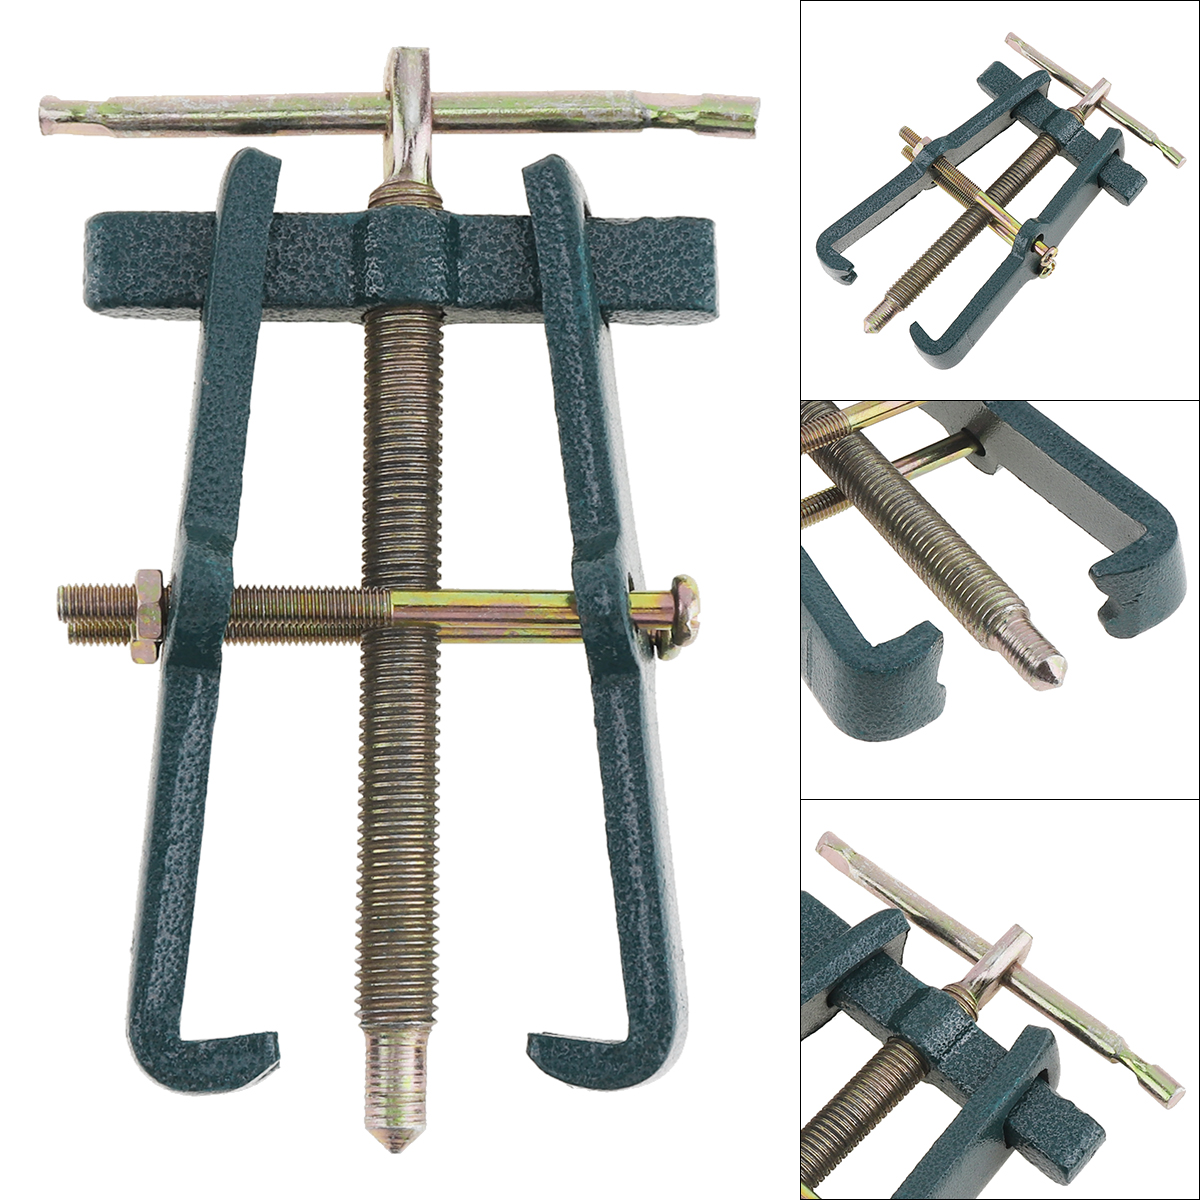 4 Inch Two-claw Puller Separate Lifting Device Multi-purpose Pull Strengthen Bearing Rama For Auto Mechanic Hand Tools